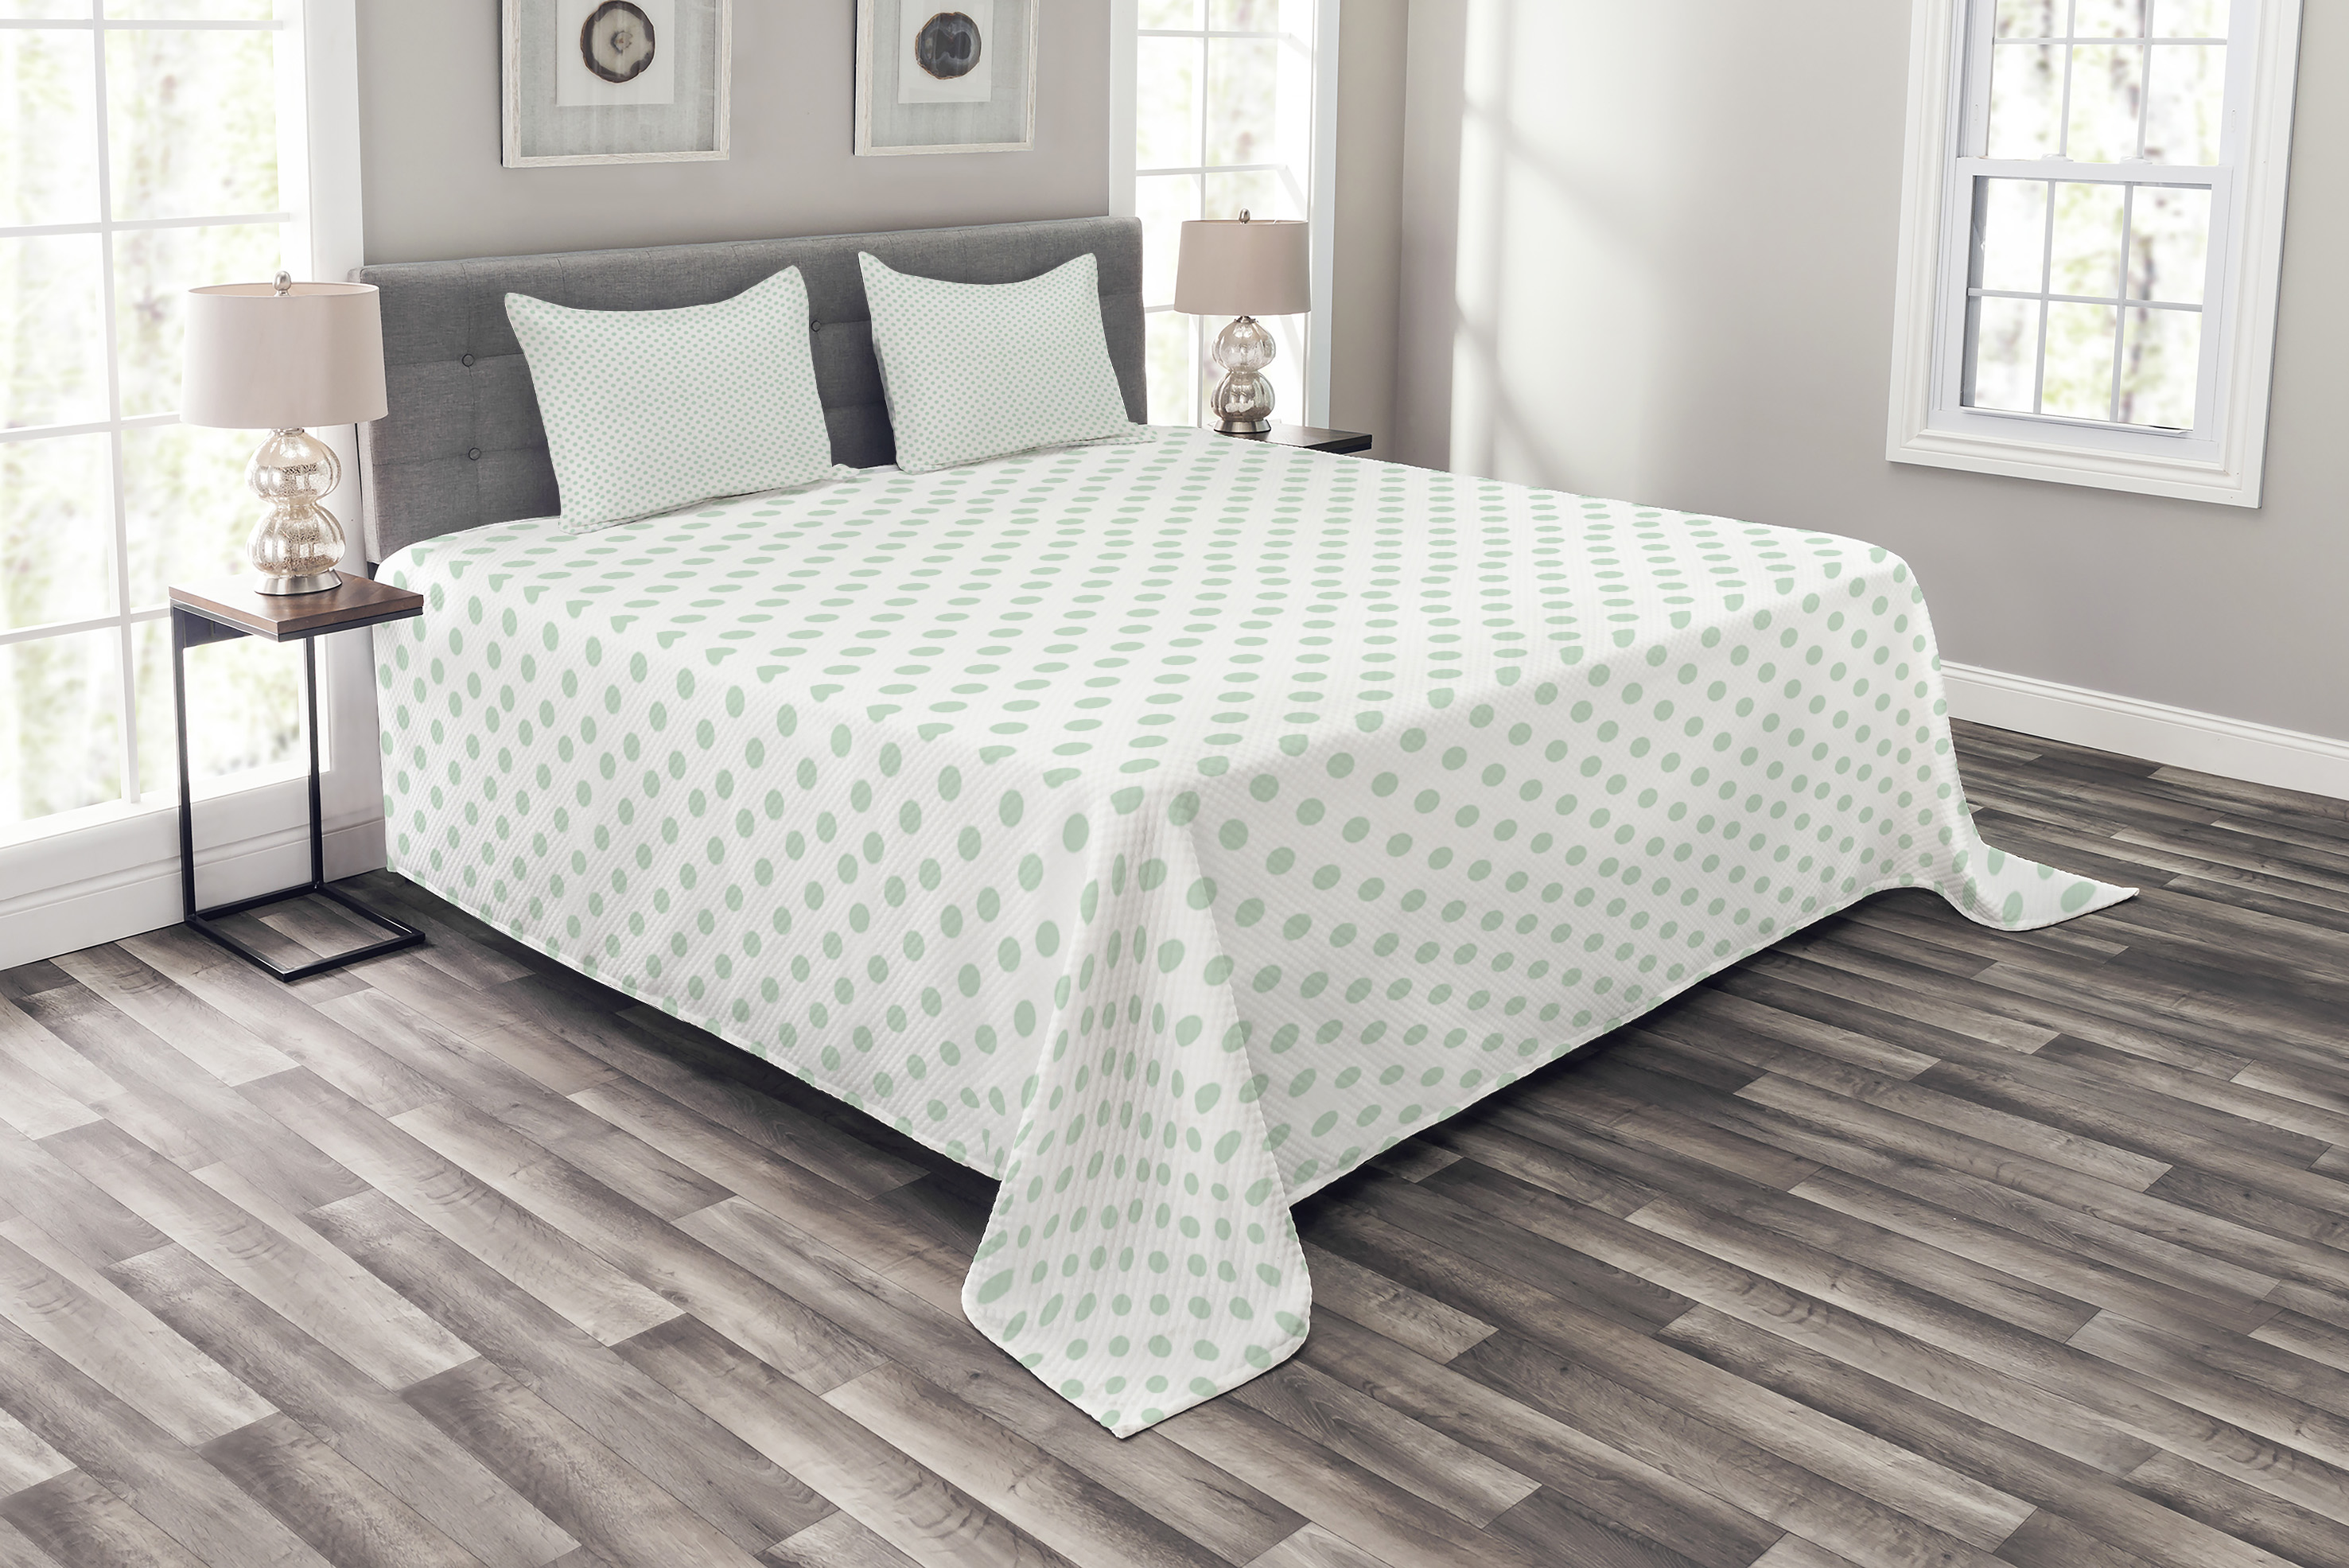 Green Bedspread Set Retro Pattern With